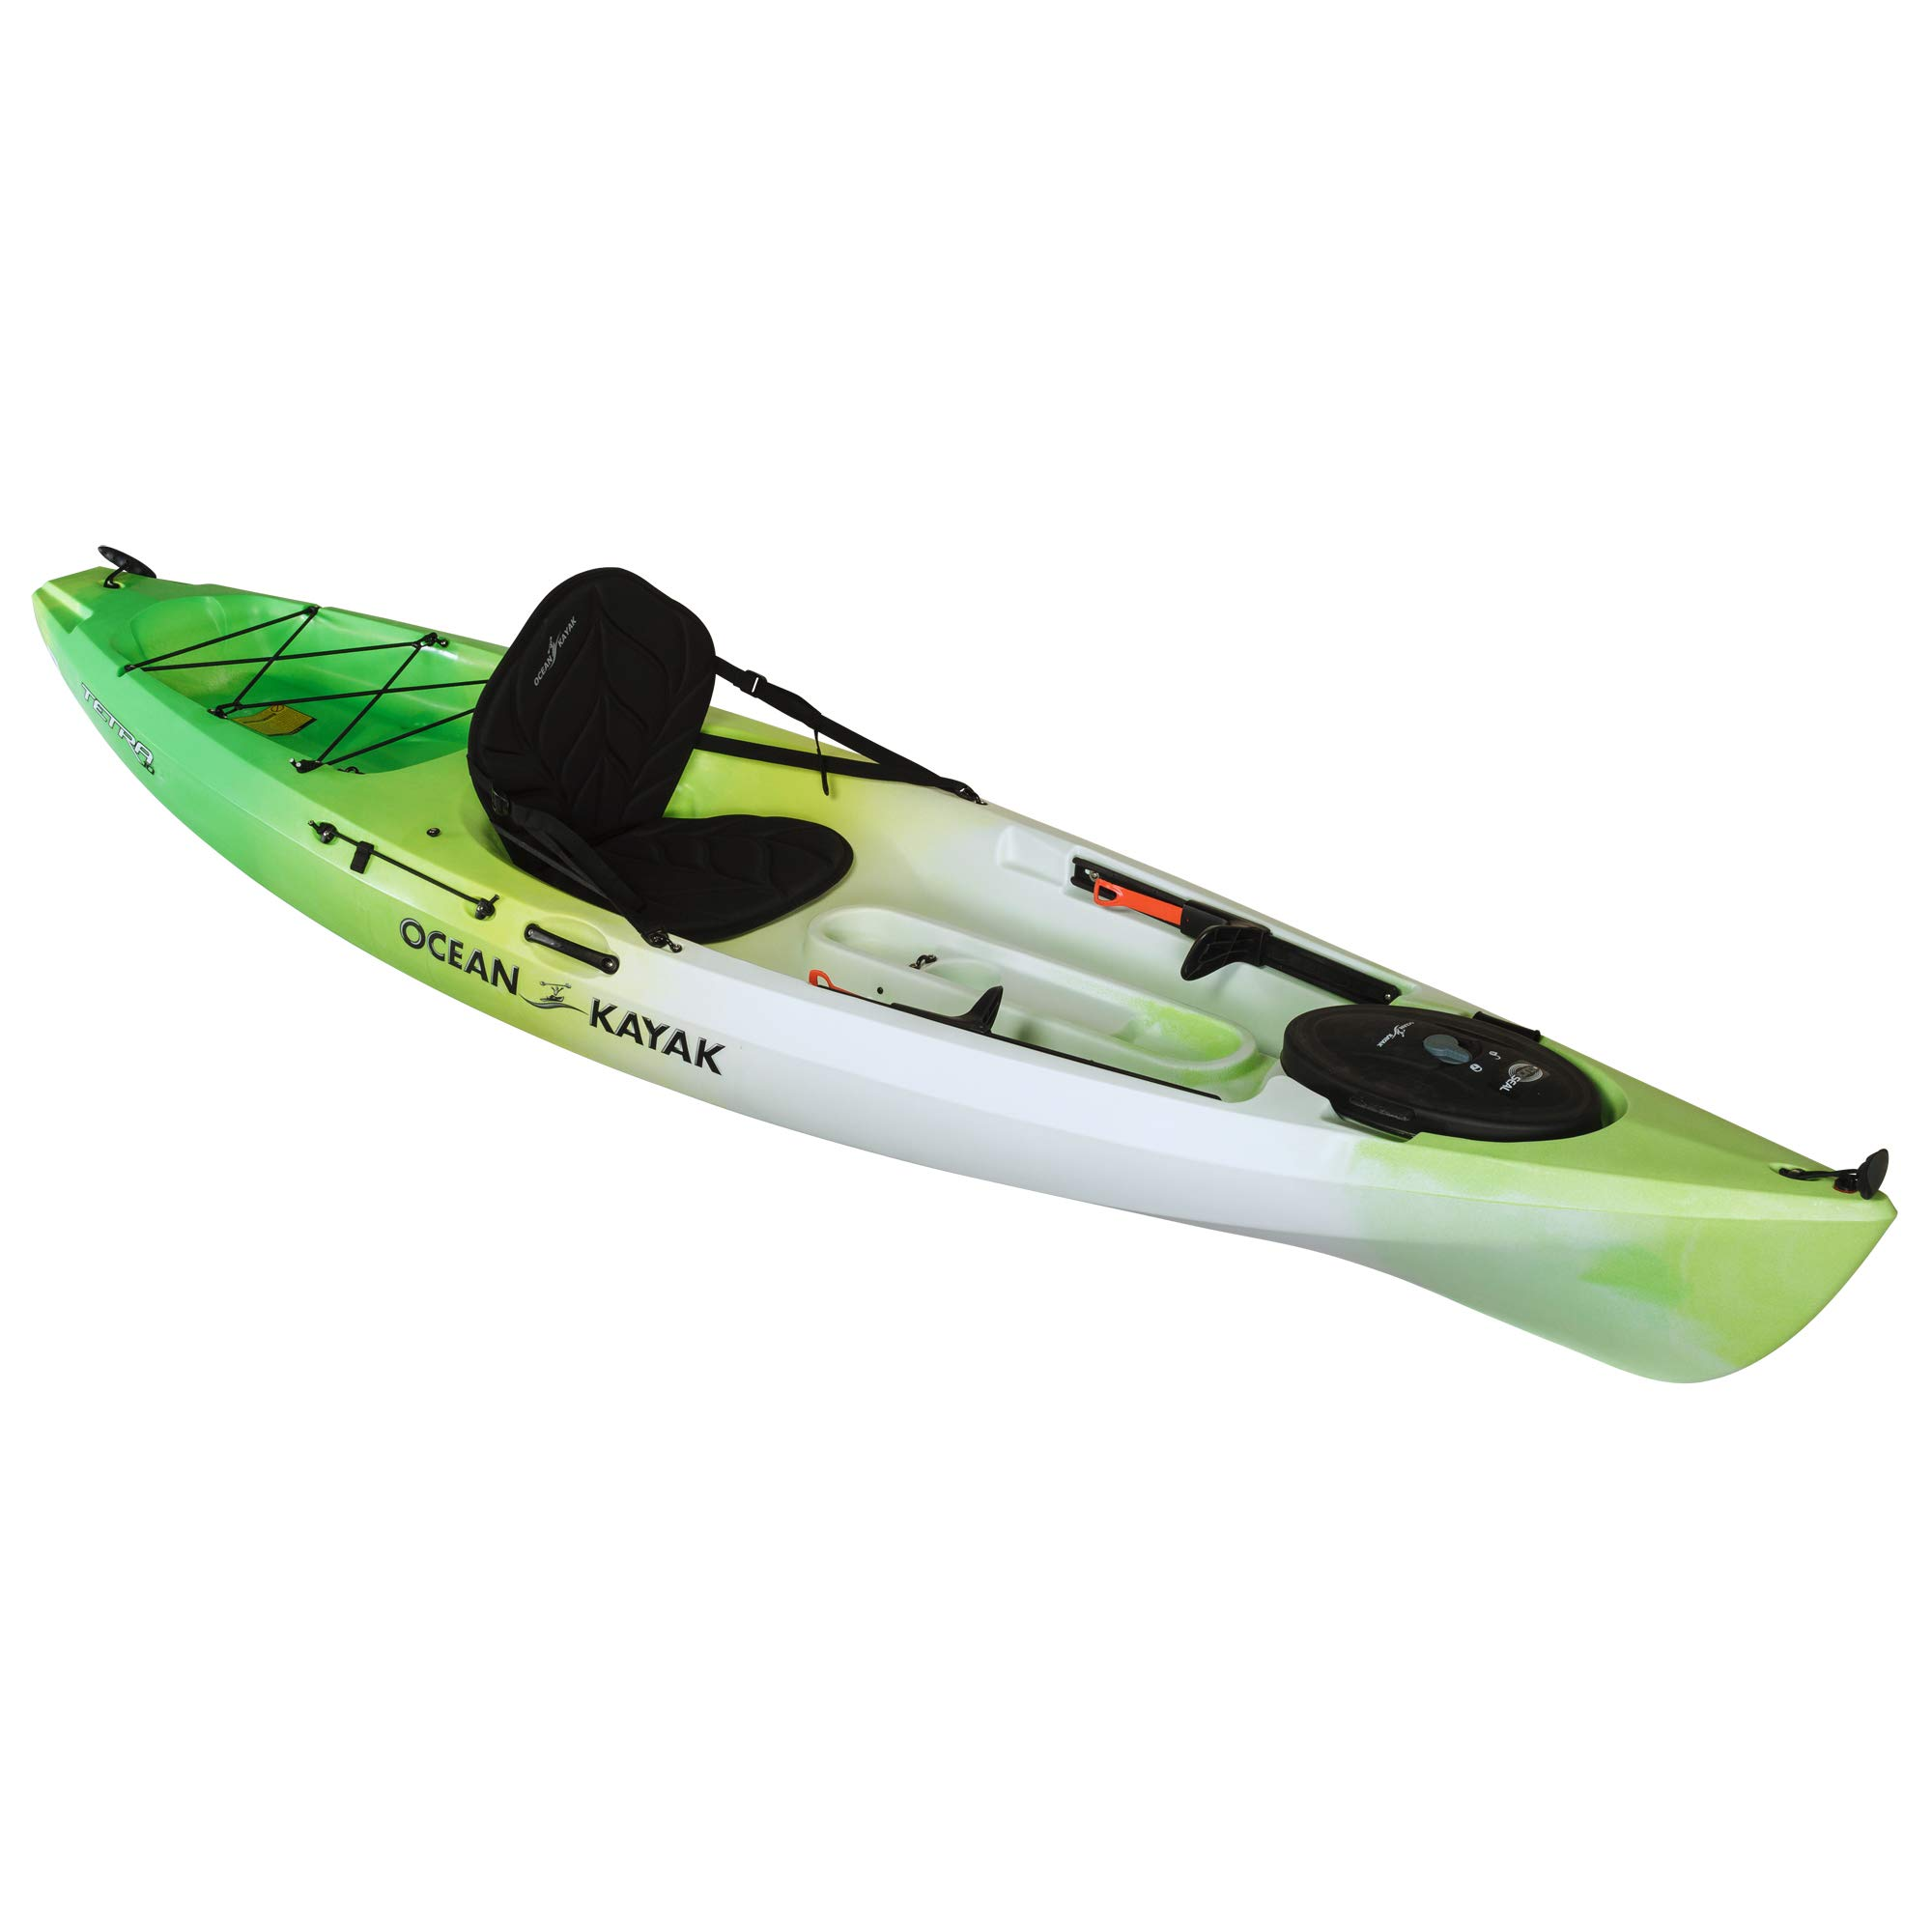 Ocean Kayak Tetra 10 One-Person Sit-On-Top Kayak, Envy, 10 Feet 8 Inches